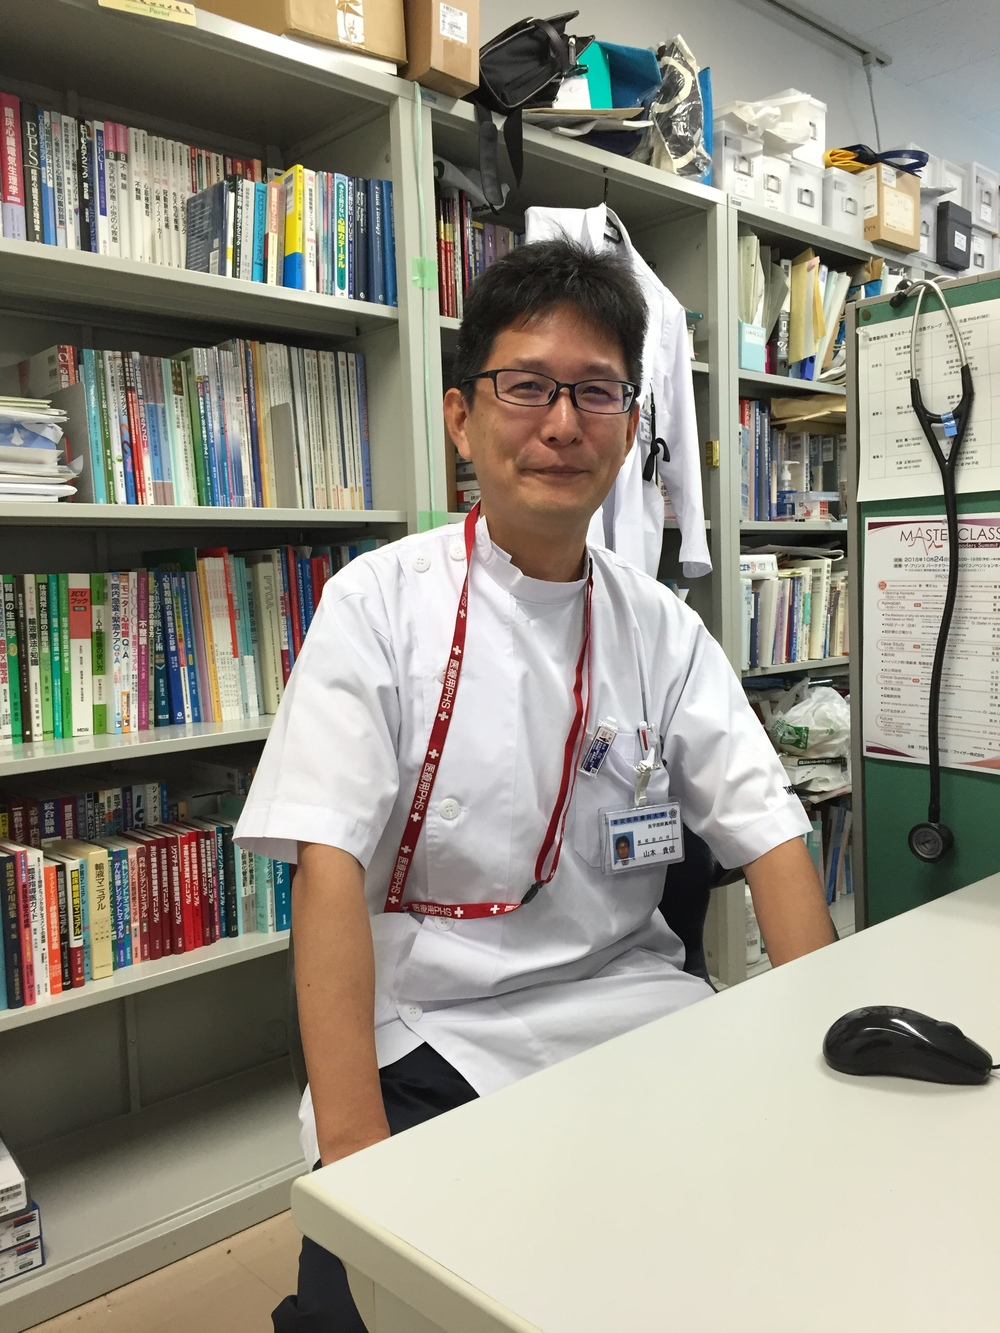 Takanobu Yamamoto, MD, PhD Email Taka 2015-Present Assistant Professor, Tokyo Medical and Dental Univeristy 2013-2015 Cardiologist-in-Chief, Shuuwa General Hospital, Saitama, Japan 2010-2013 Postdoctoral Fellow, UMDNJ 2005-2010 PhD, Tokyo Medical and Dental University 1996-2005 Resident and Fellow, Toranomon Hospital, Japan 1990-1996 MD, Tokyo Medical and Dental University, Japan Research Interests: Myocardial metabolism